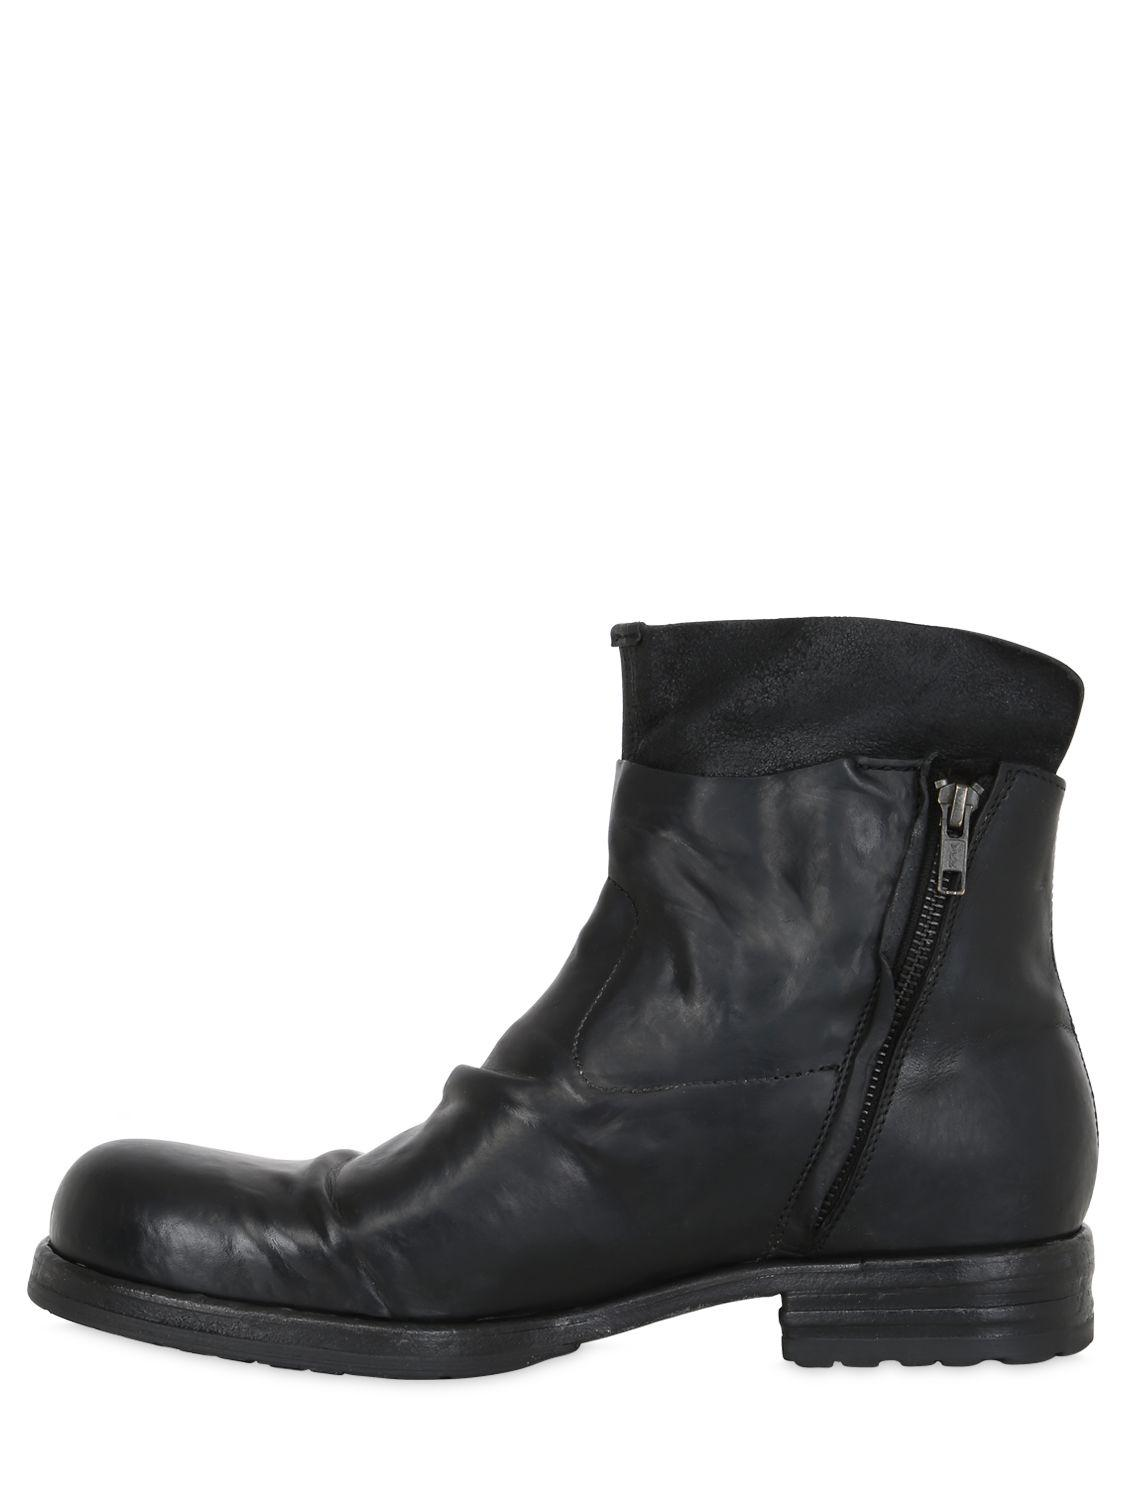 Lyst Shoto Washed Horse Leather Ankle Boots In Black For Men